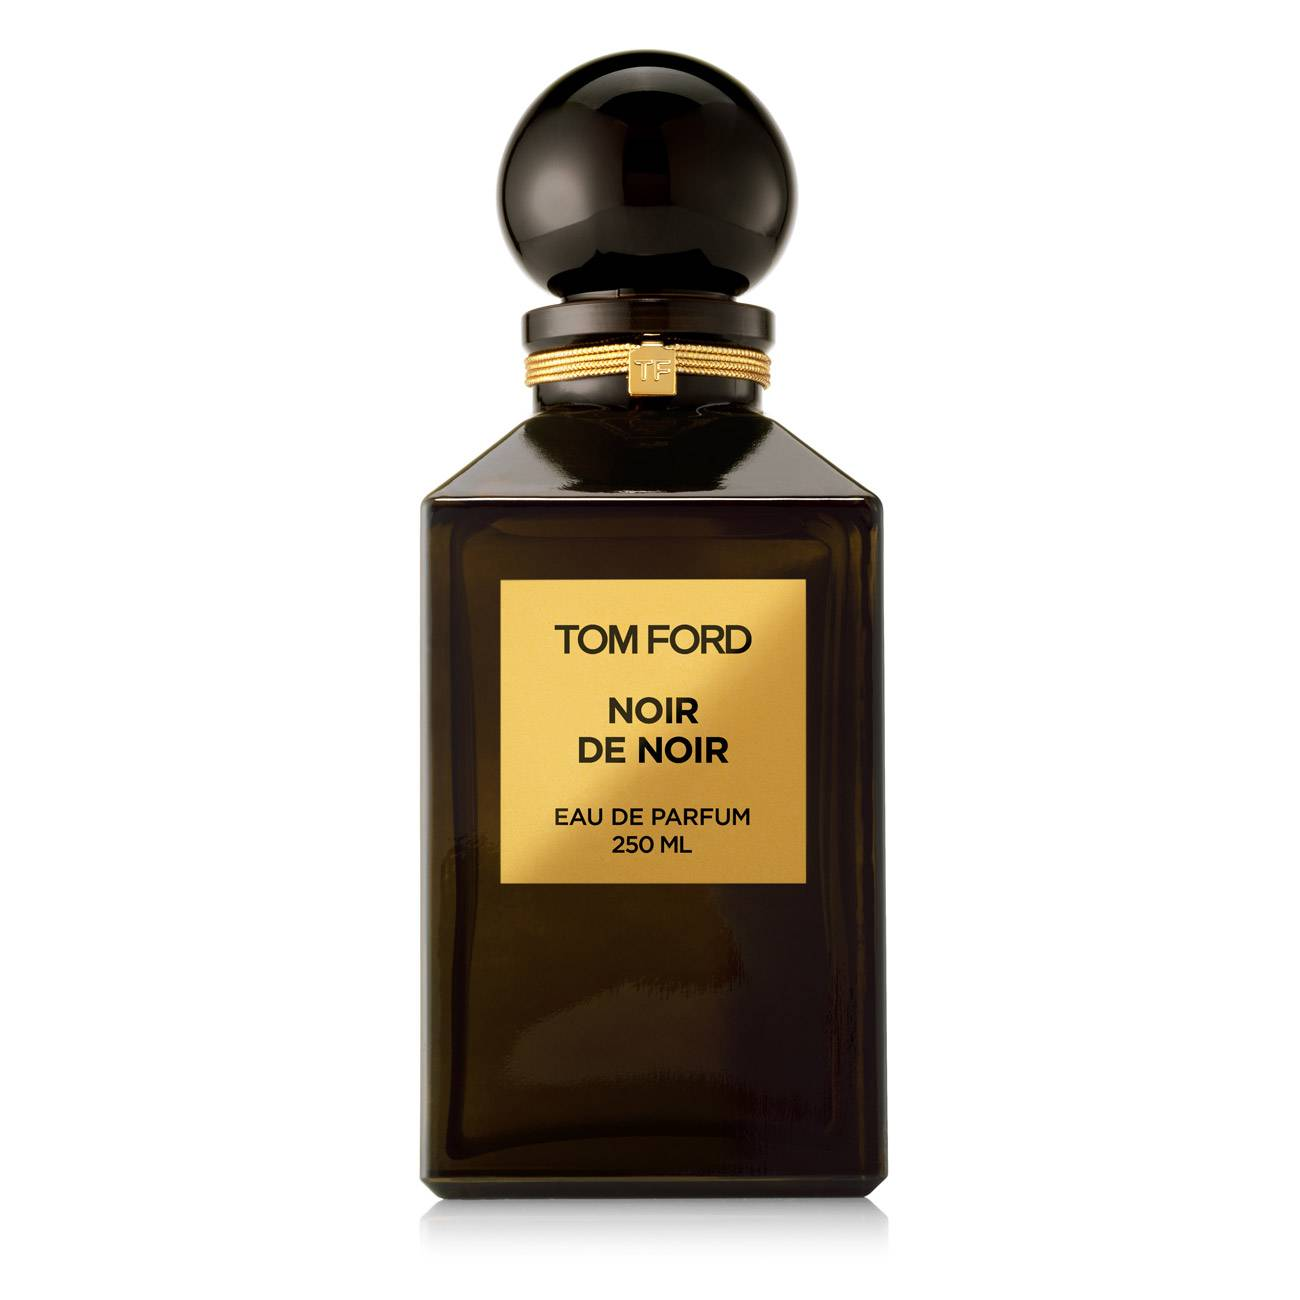 NOIR DE NOIR DECANTER 250ml